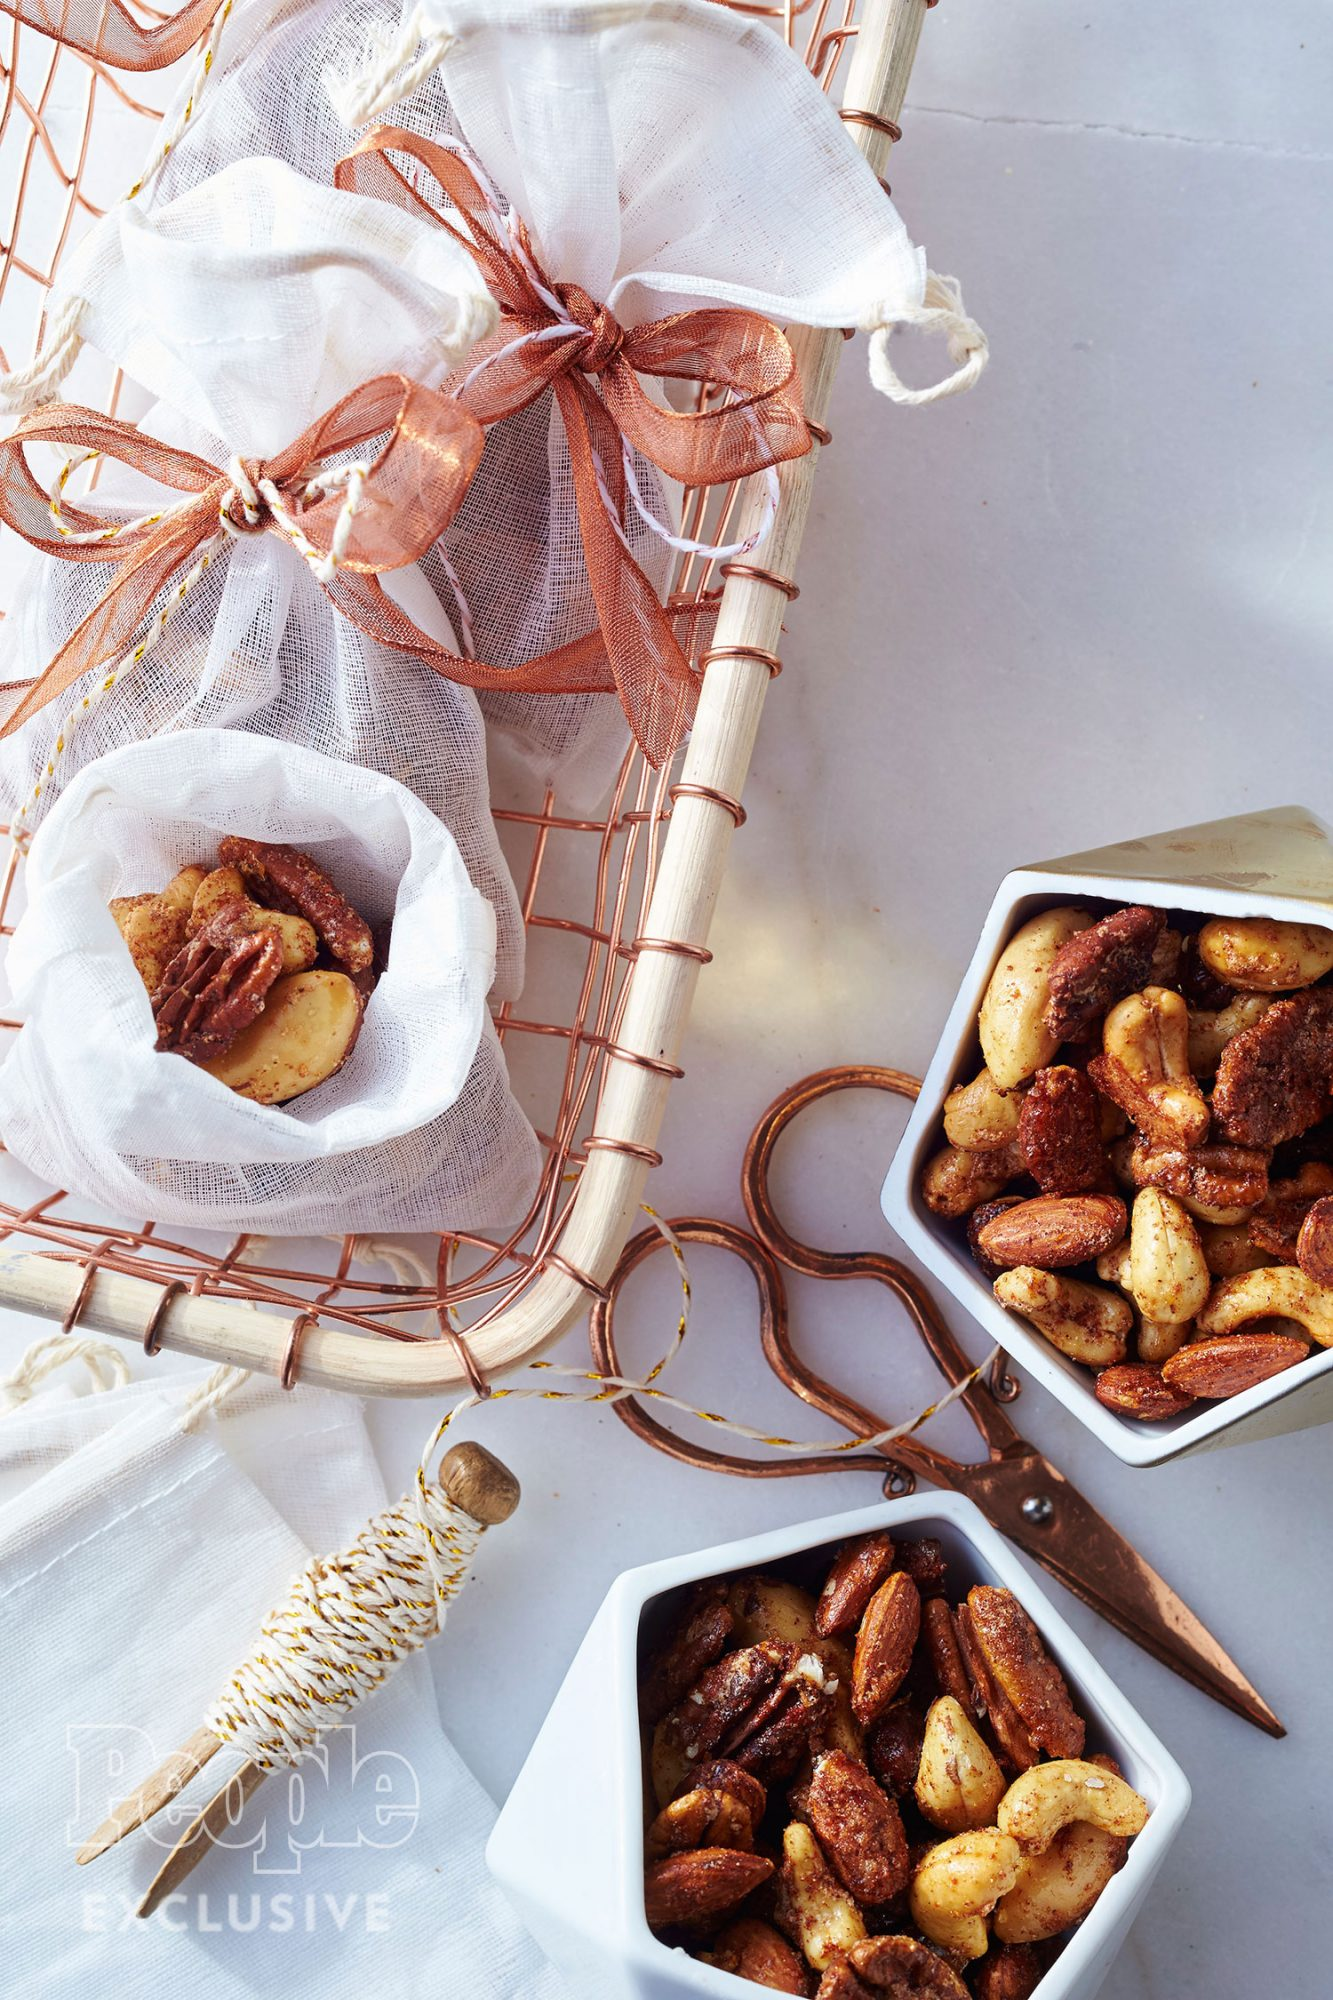 Photographer Hector Manuel Sanchez, Food Styling Victoria Cox, Prop Styling Claire Spollen People Food Anthony Bourdain The Grill Bitchs Bar Nuts